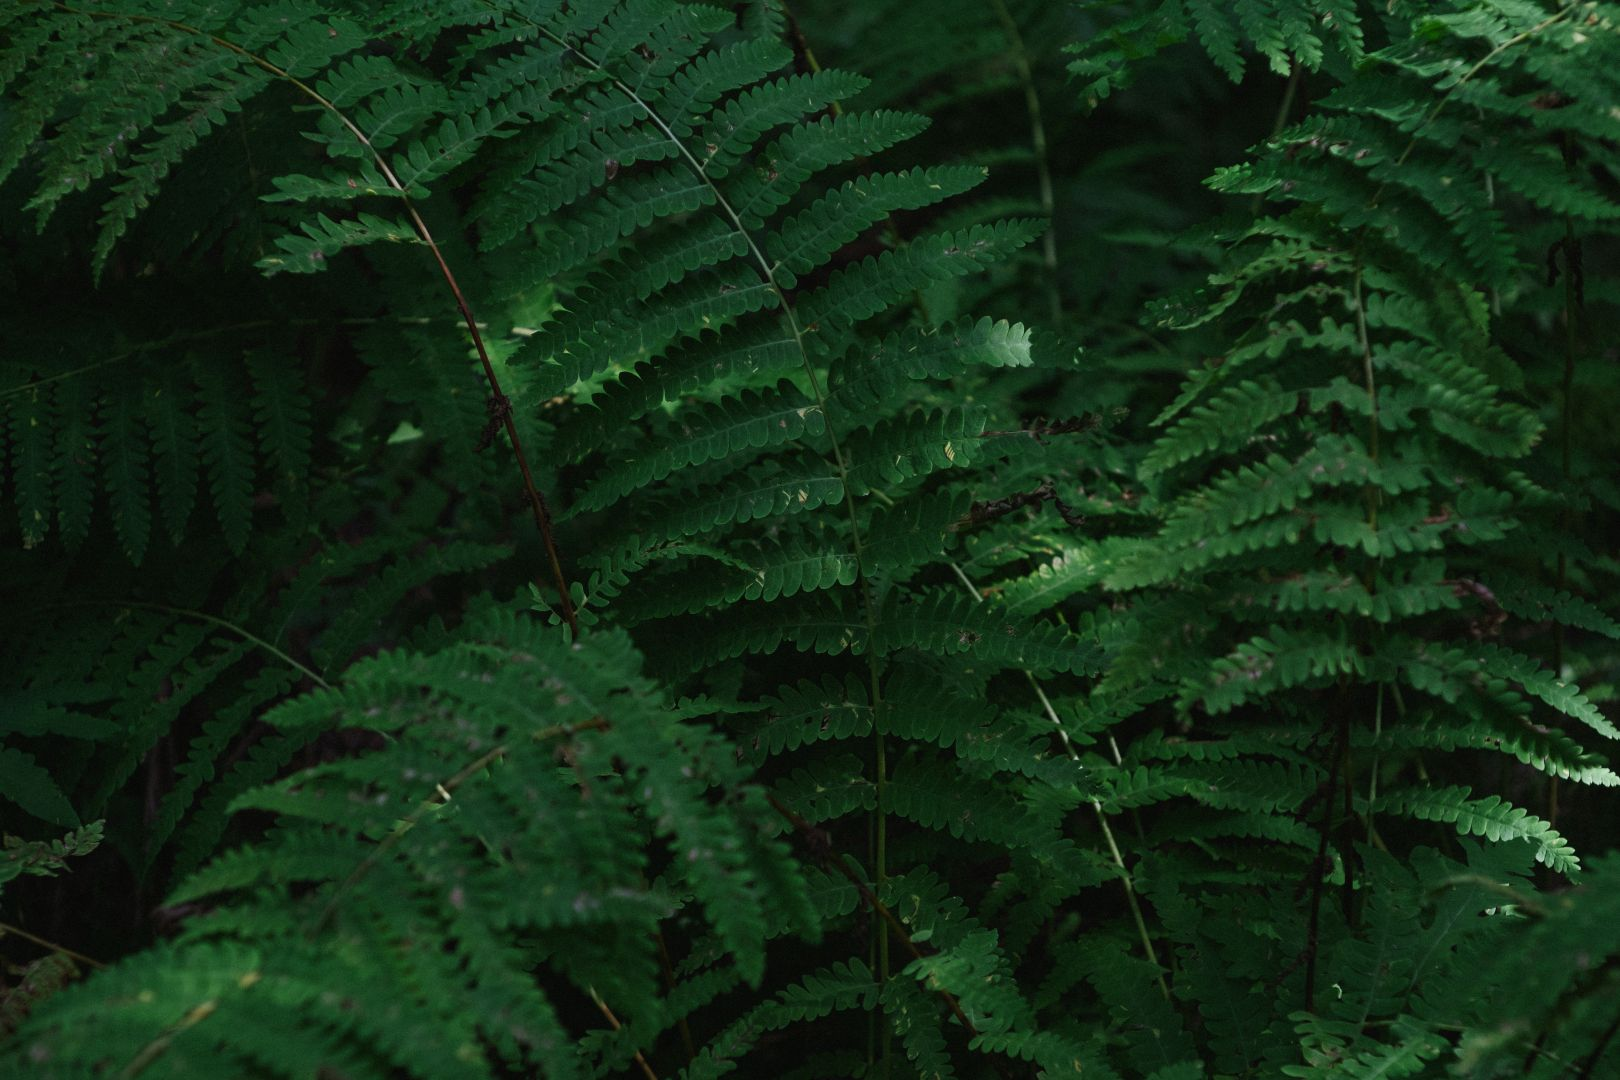 A photo depicting Green Fern Background